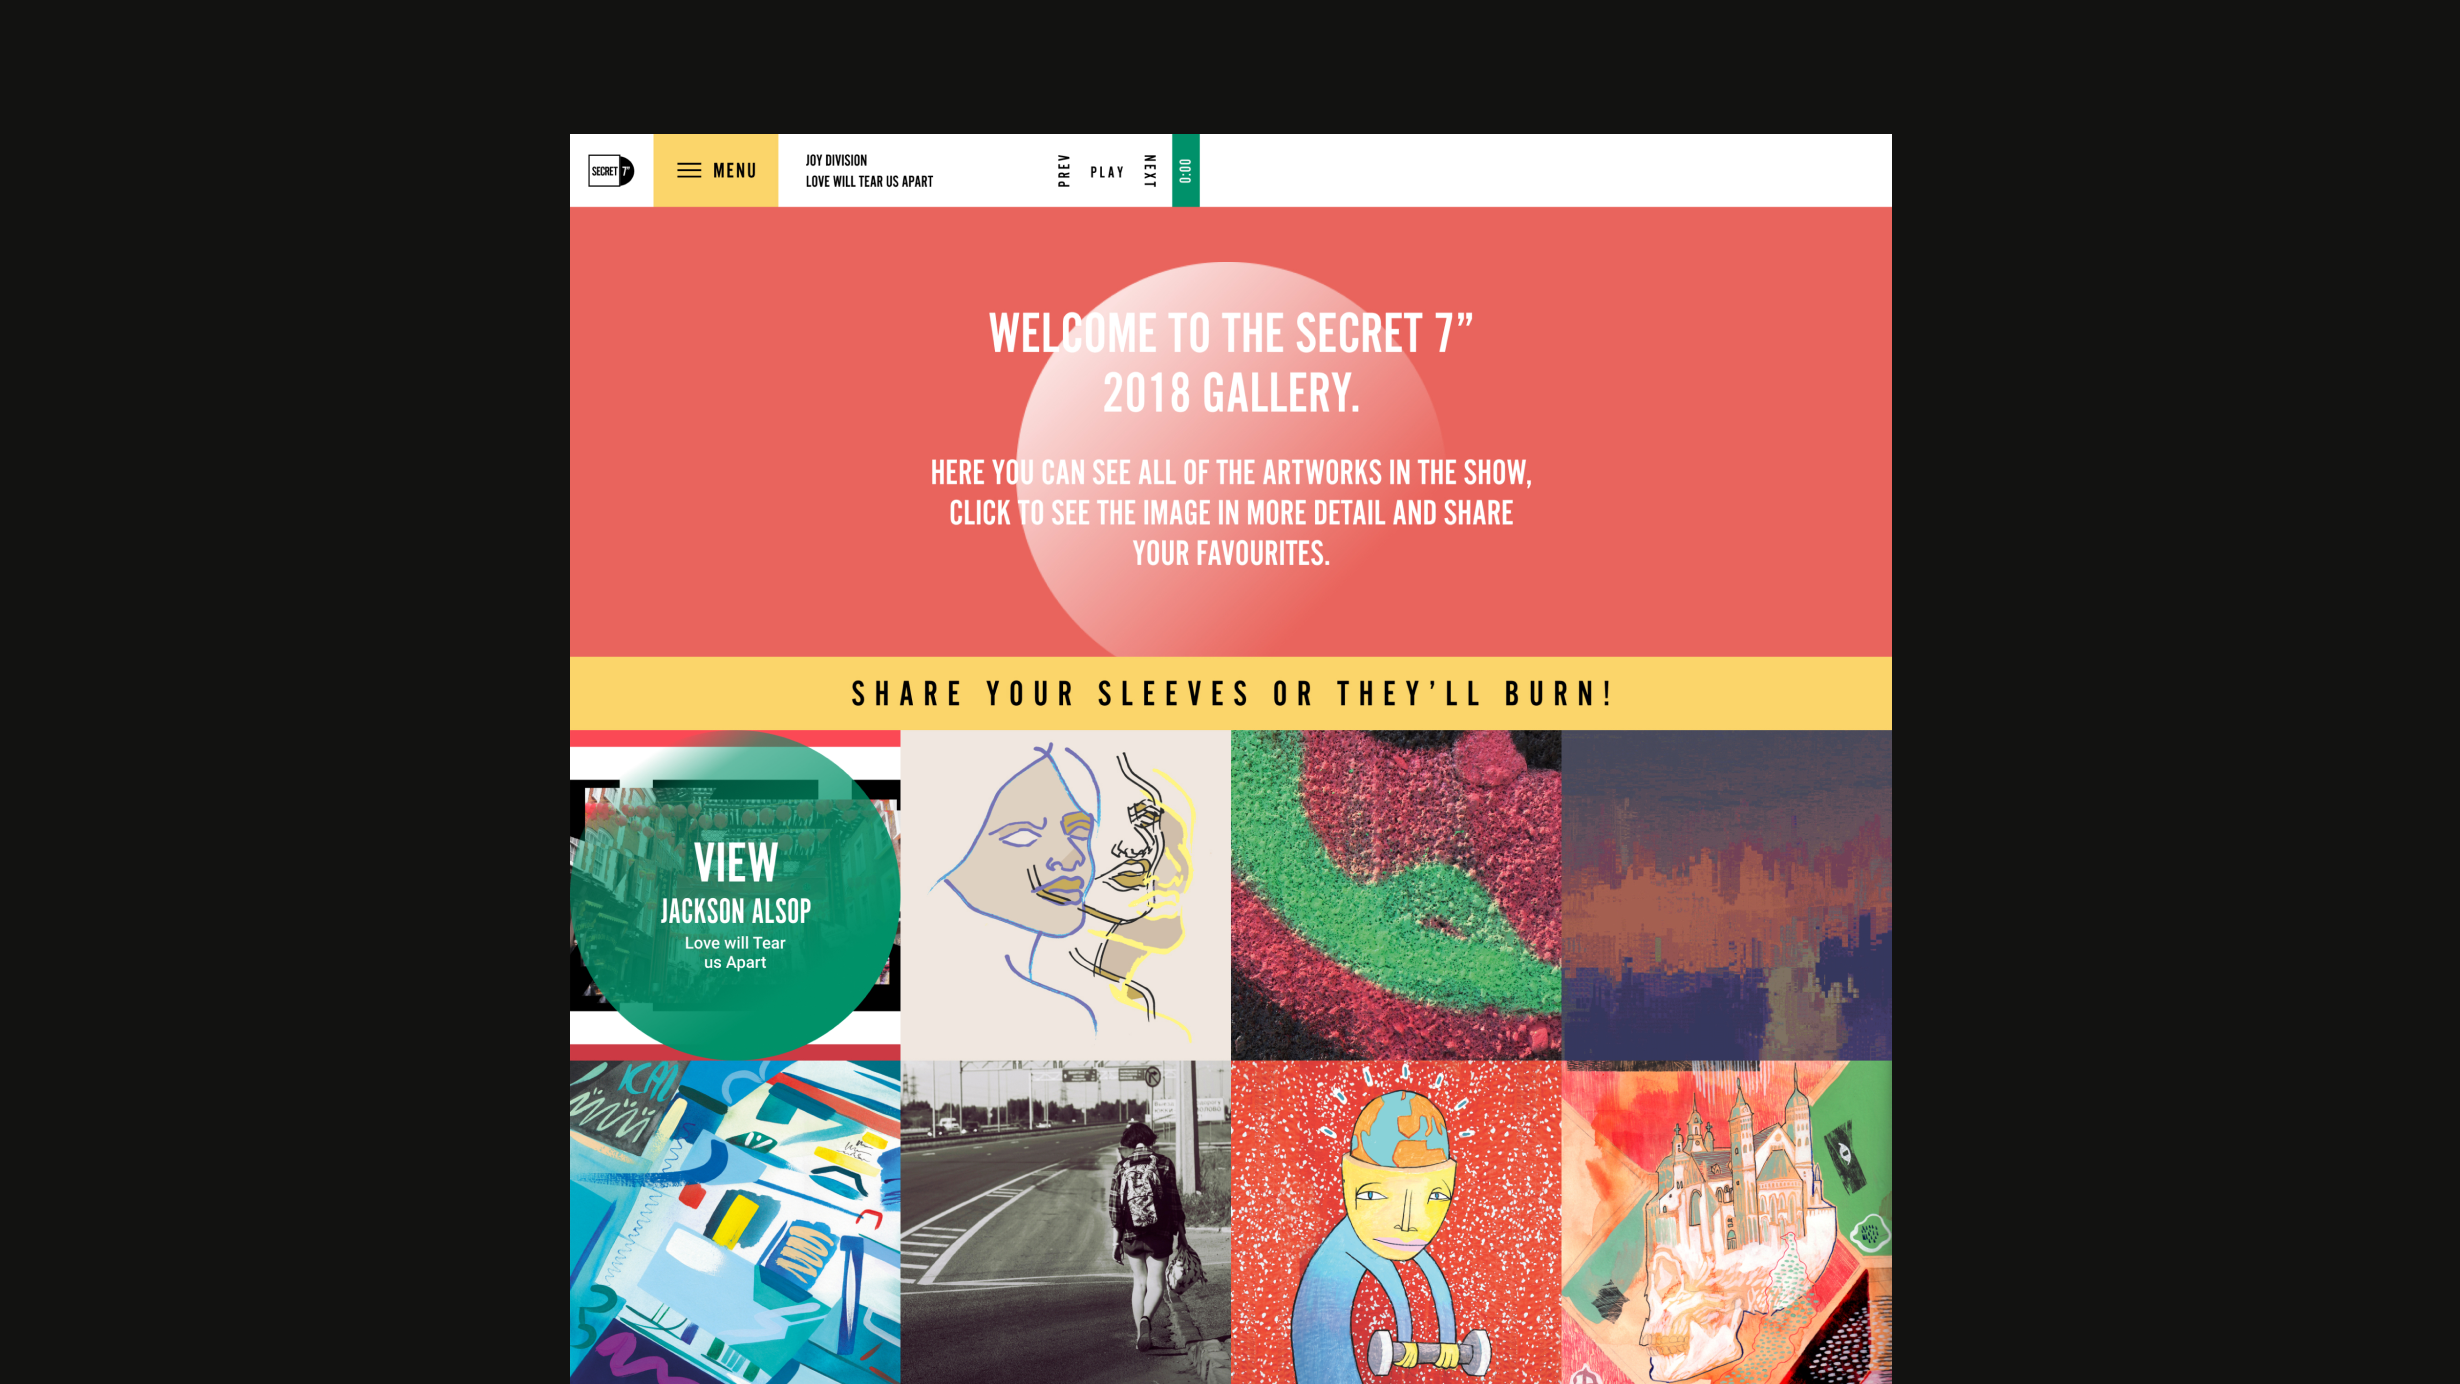 "Secret7"" desktop website gallery view, showcasing various record artworks"